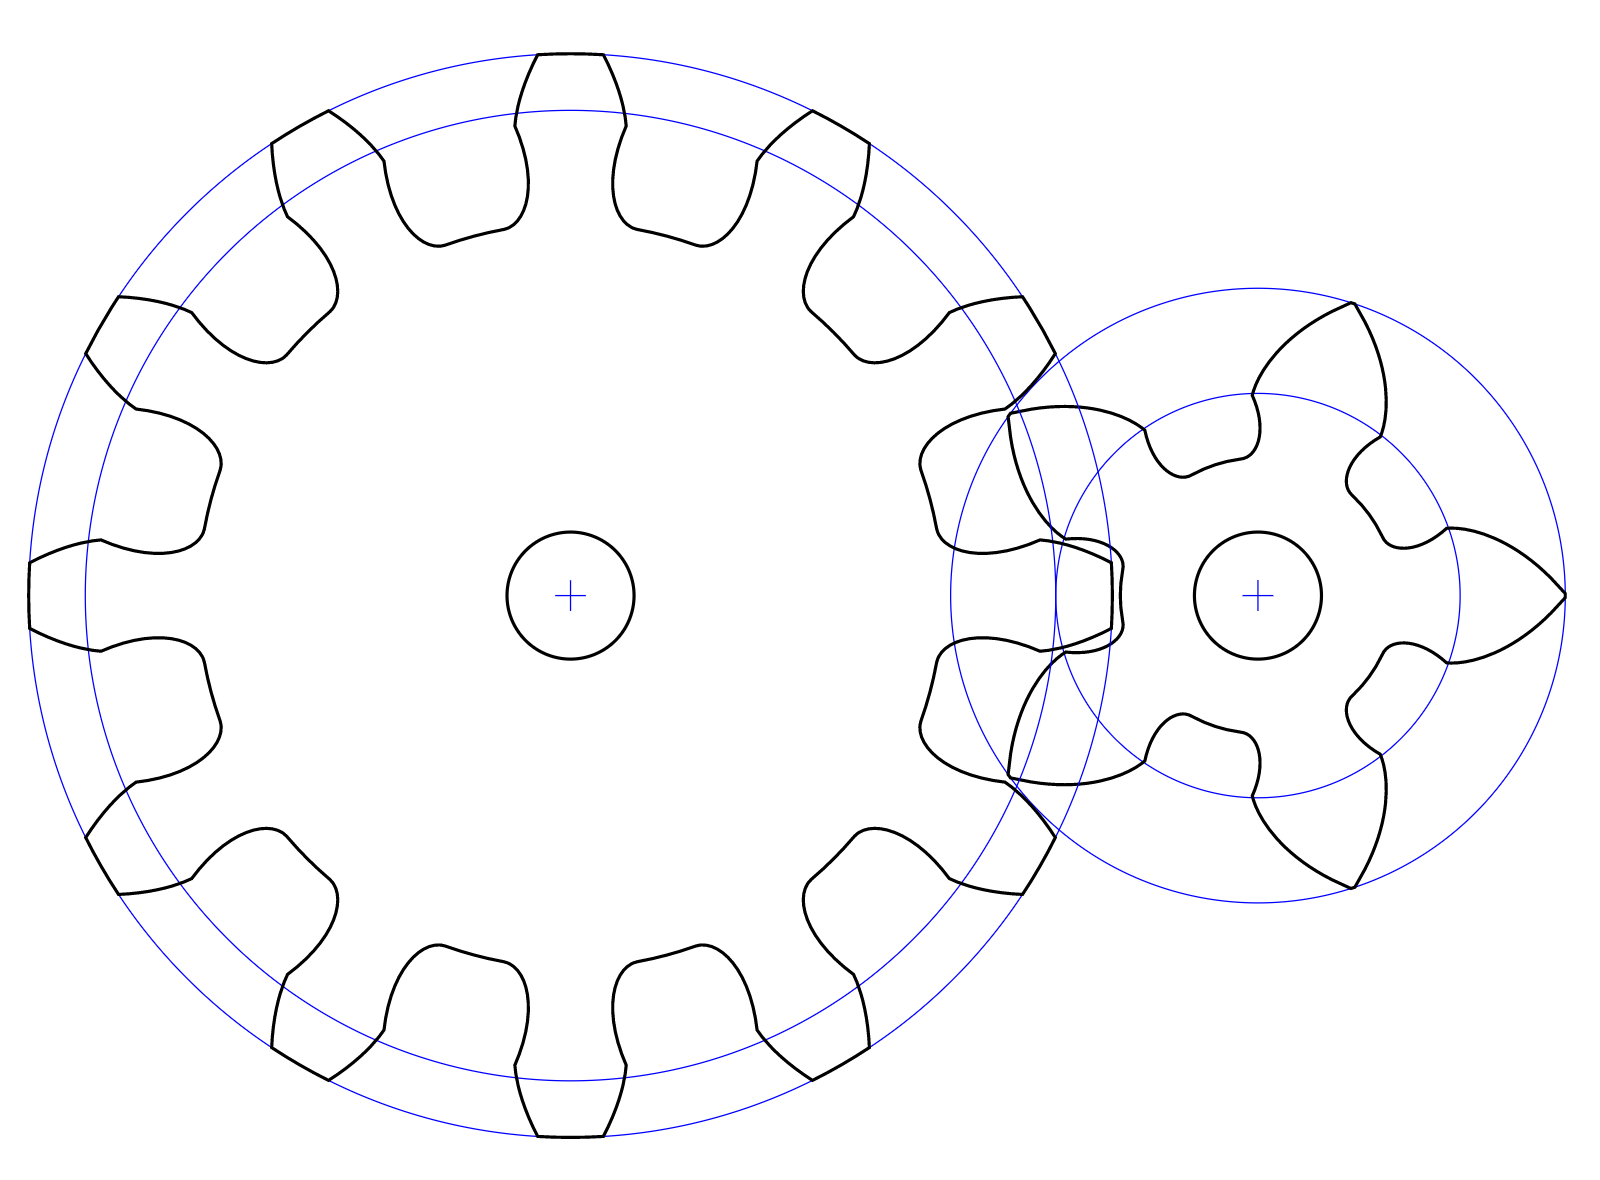 Involute gears with undercut and profile shift.